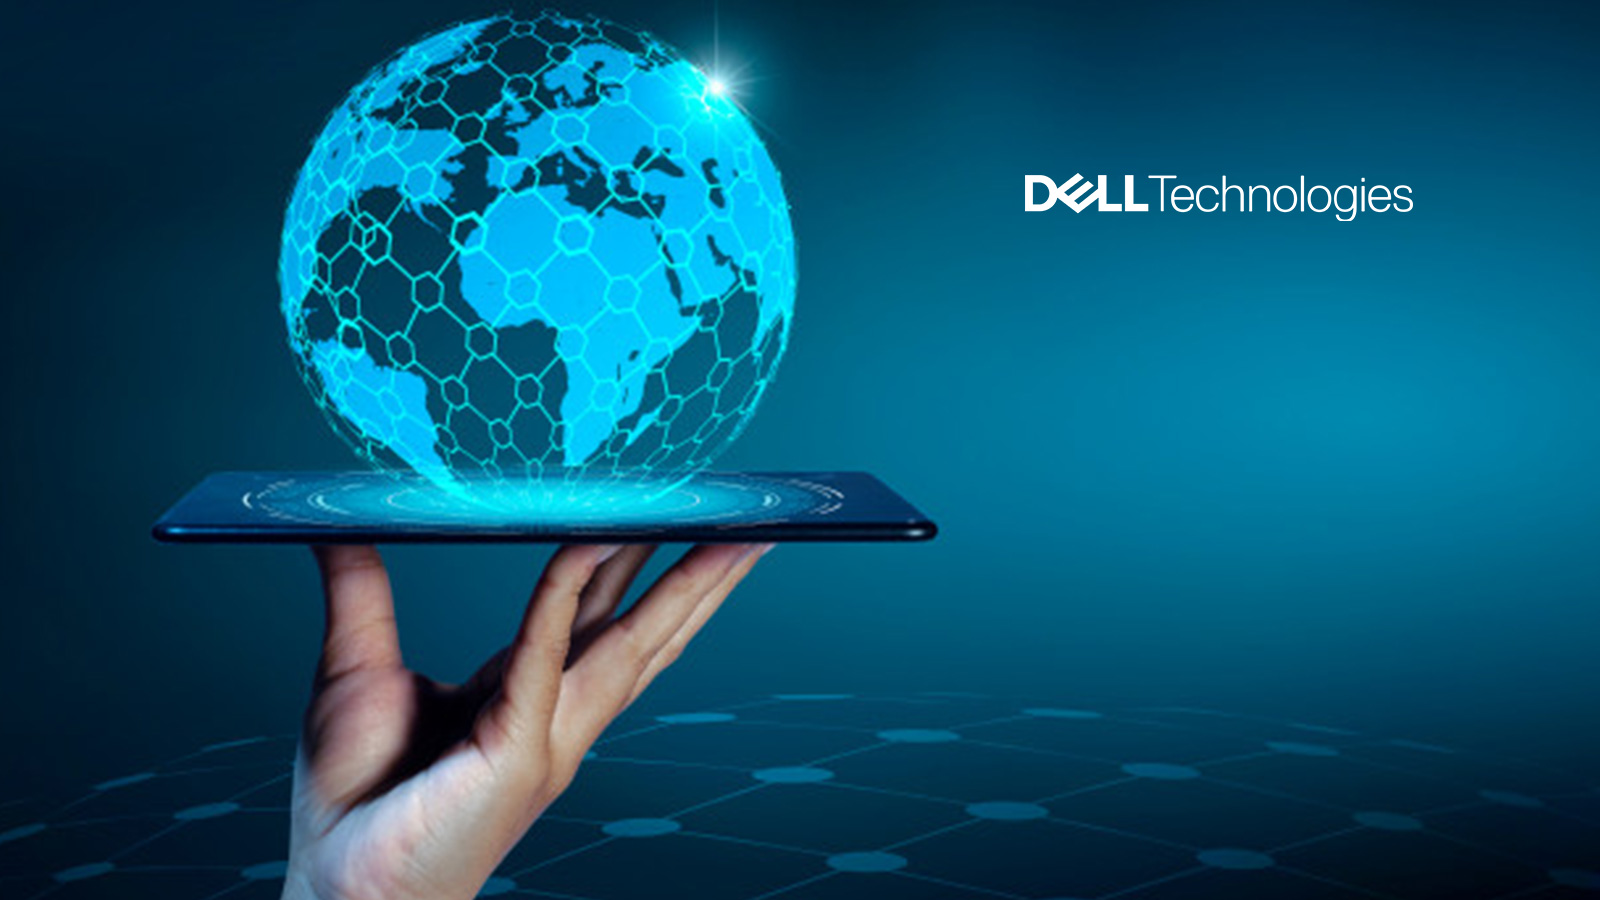 Performance Technology: Dell Technologies Simplifies Customers' To Innovation With